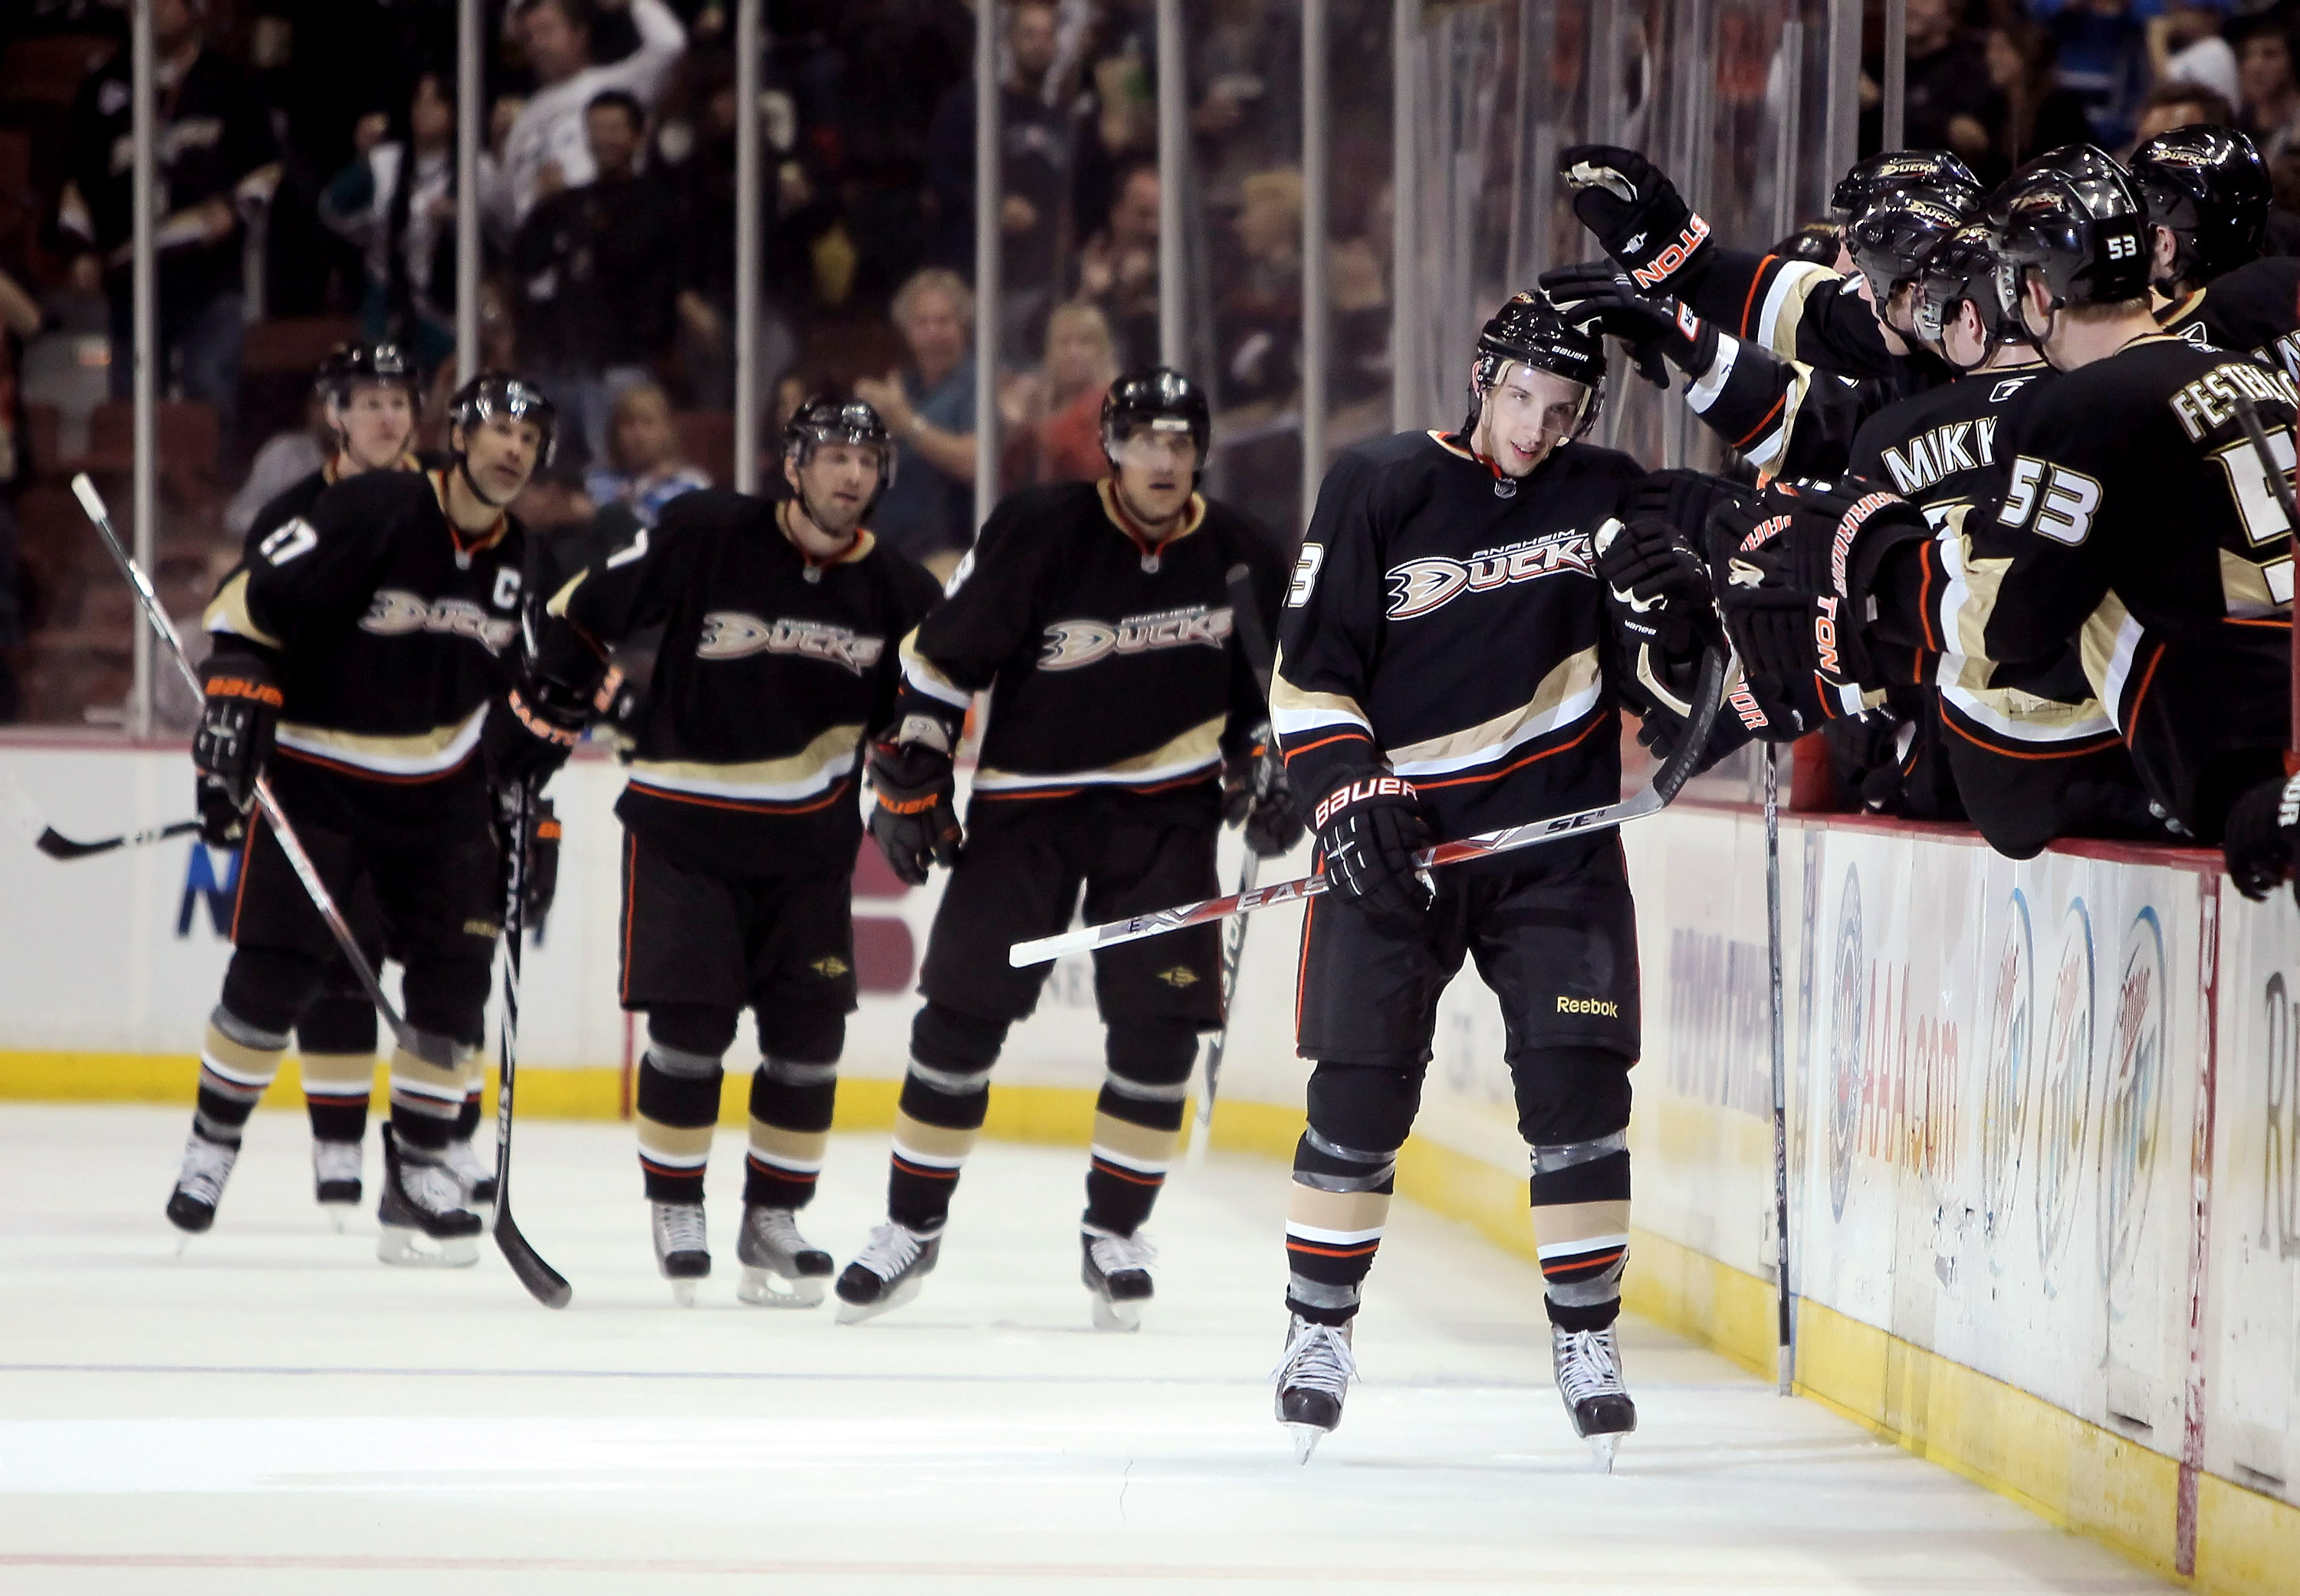 ANAHEIM, CA - MARCH 29:  Nick Bonino (R) #63 of the Anaheim Ducks receives high fives from the bench after scoring his first NHL goal in the second period against the Dallas Stars at the Honda Center on March 29, 2010 in Anaheim, California.  (Photo by Je